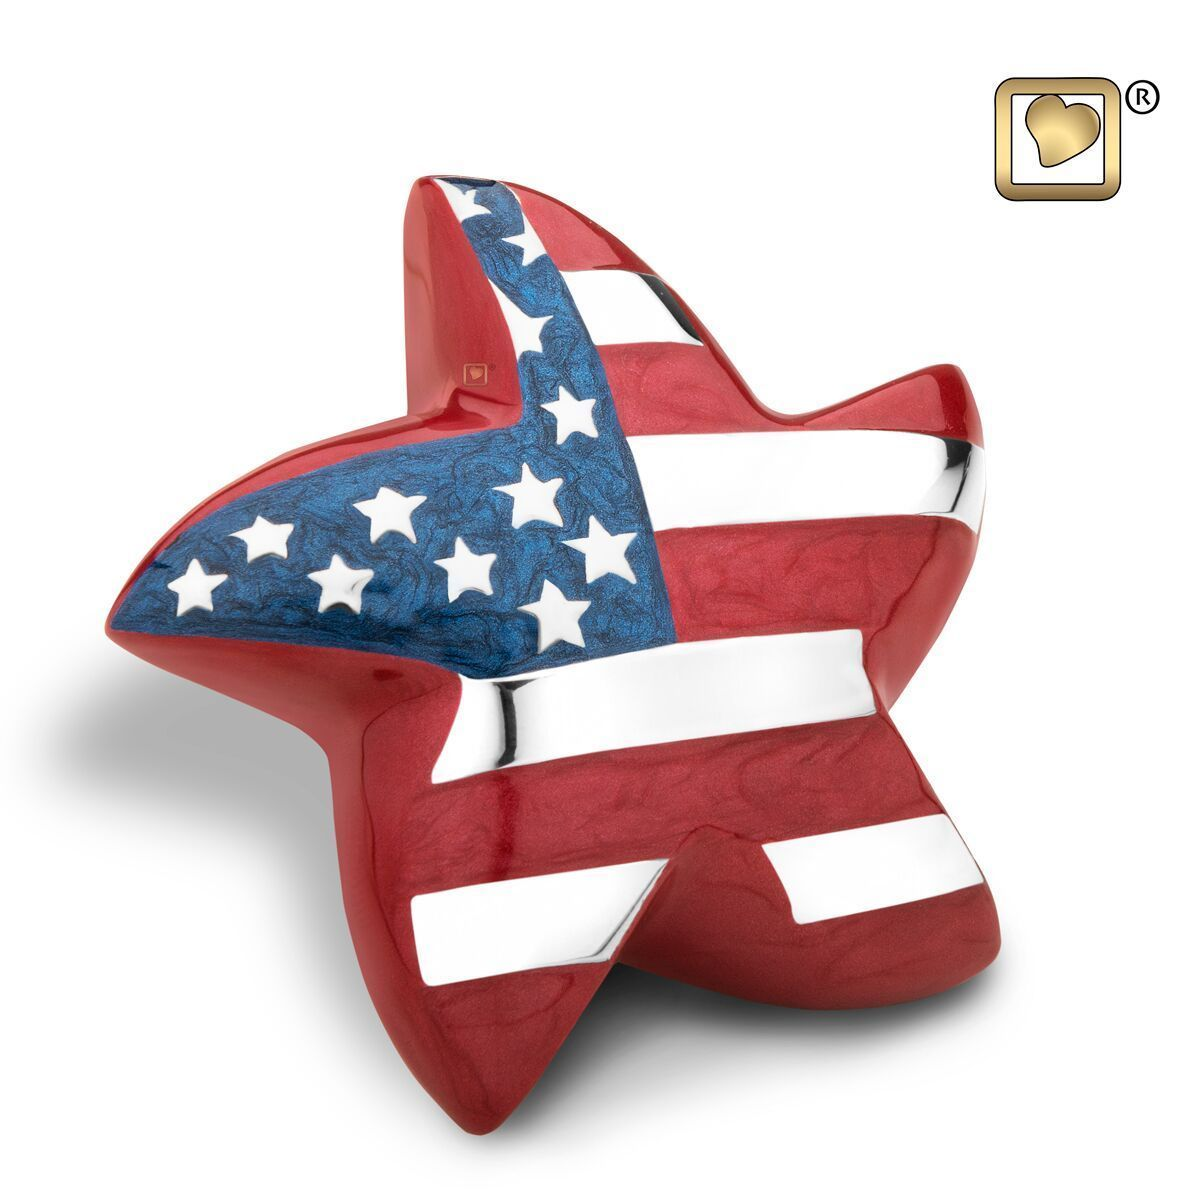 Stars & Stripes American Flag Adult Funeral Cremation Urn, 195 Cubic Inches image 3